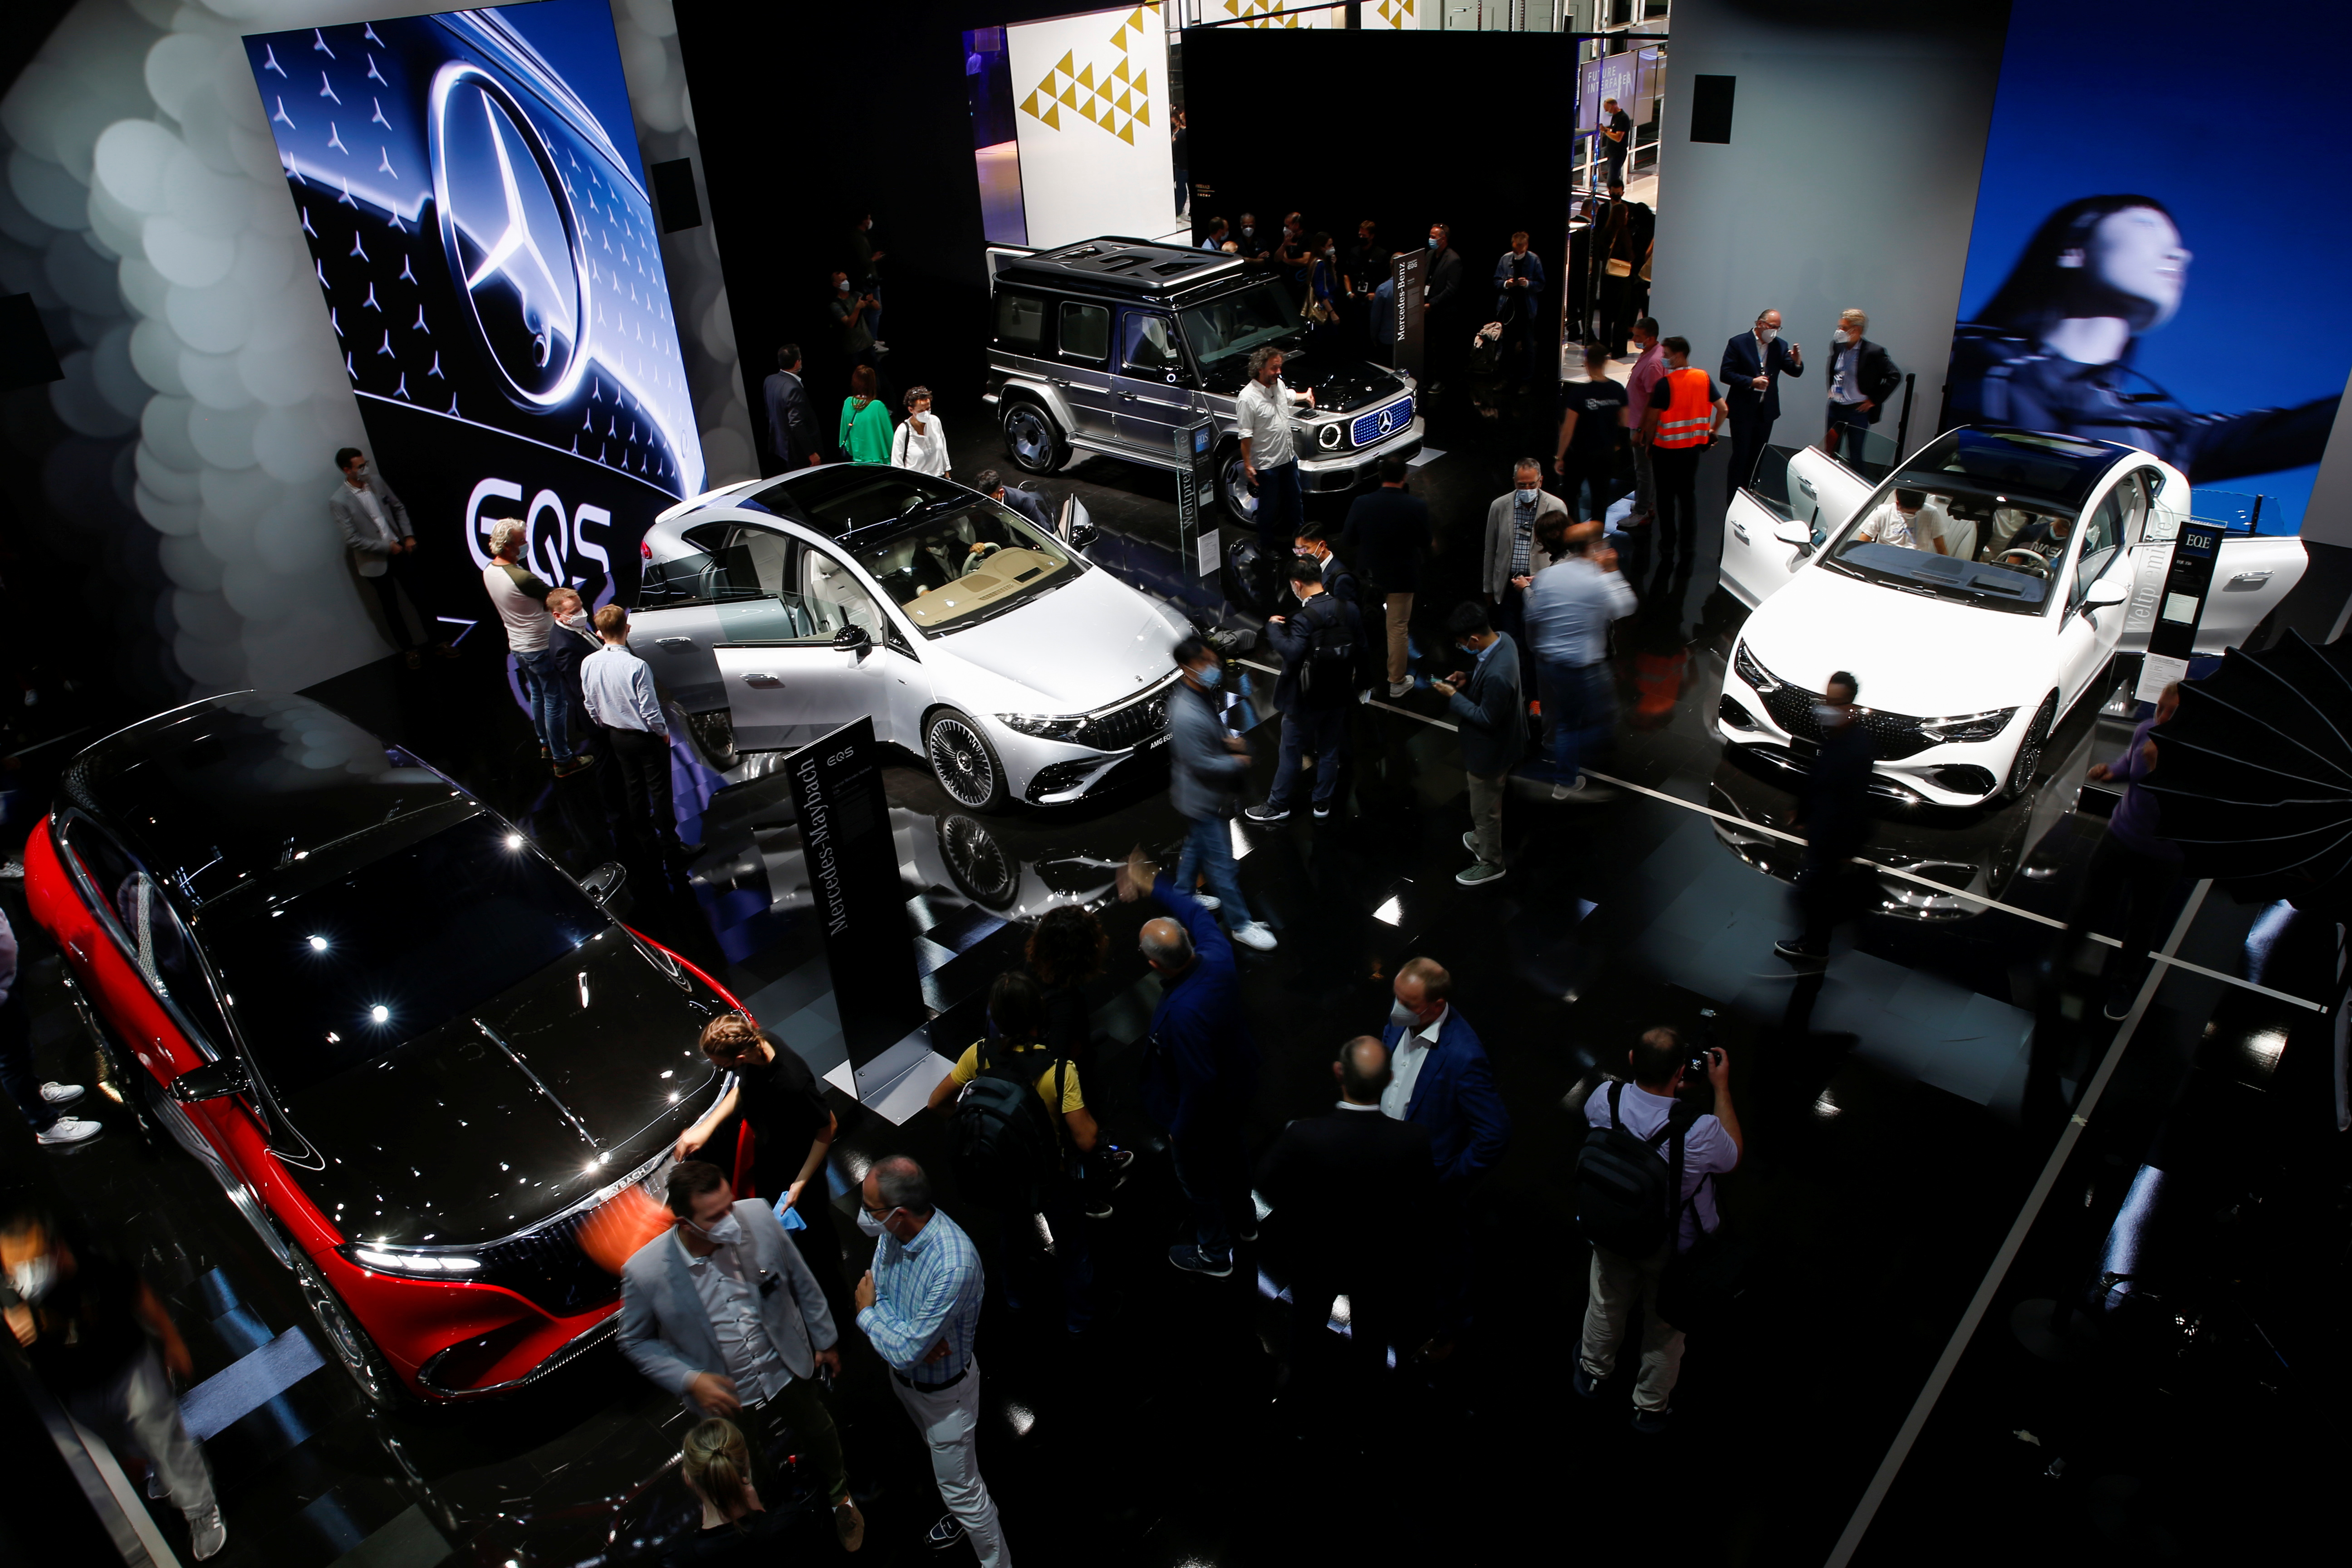 Visitors stand at Mercedes booth ahead of the Munich Motor Show IAA Mobility 2021 in Munich, Germany, September 6, 2021. REUTERS/Michaela Rehle